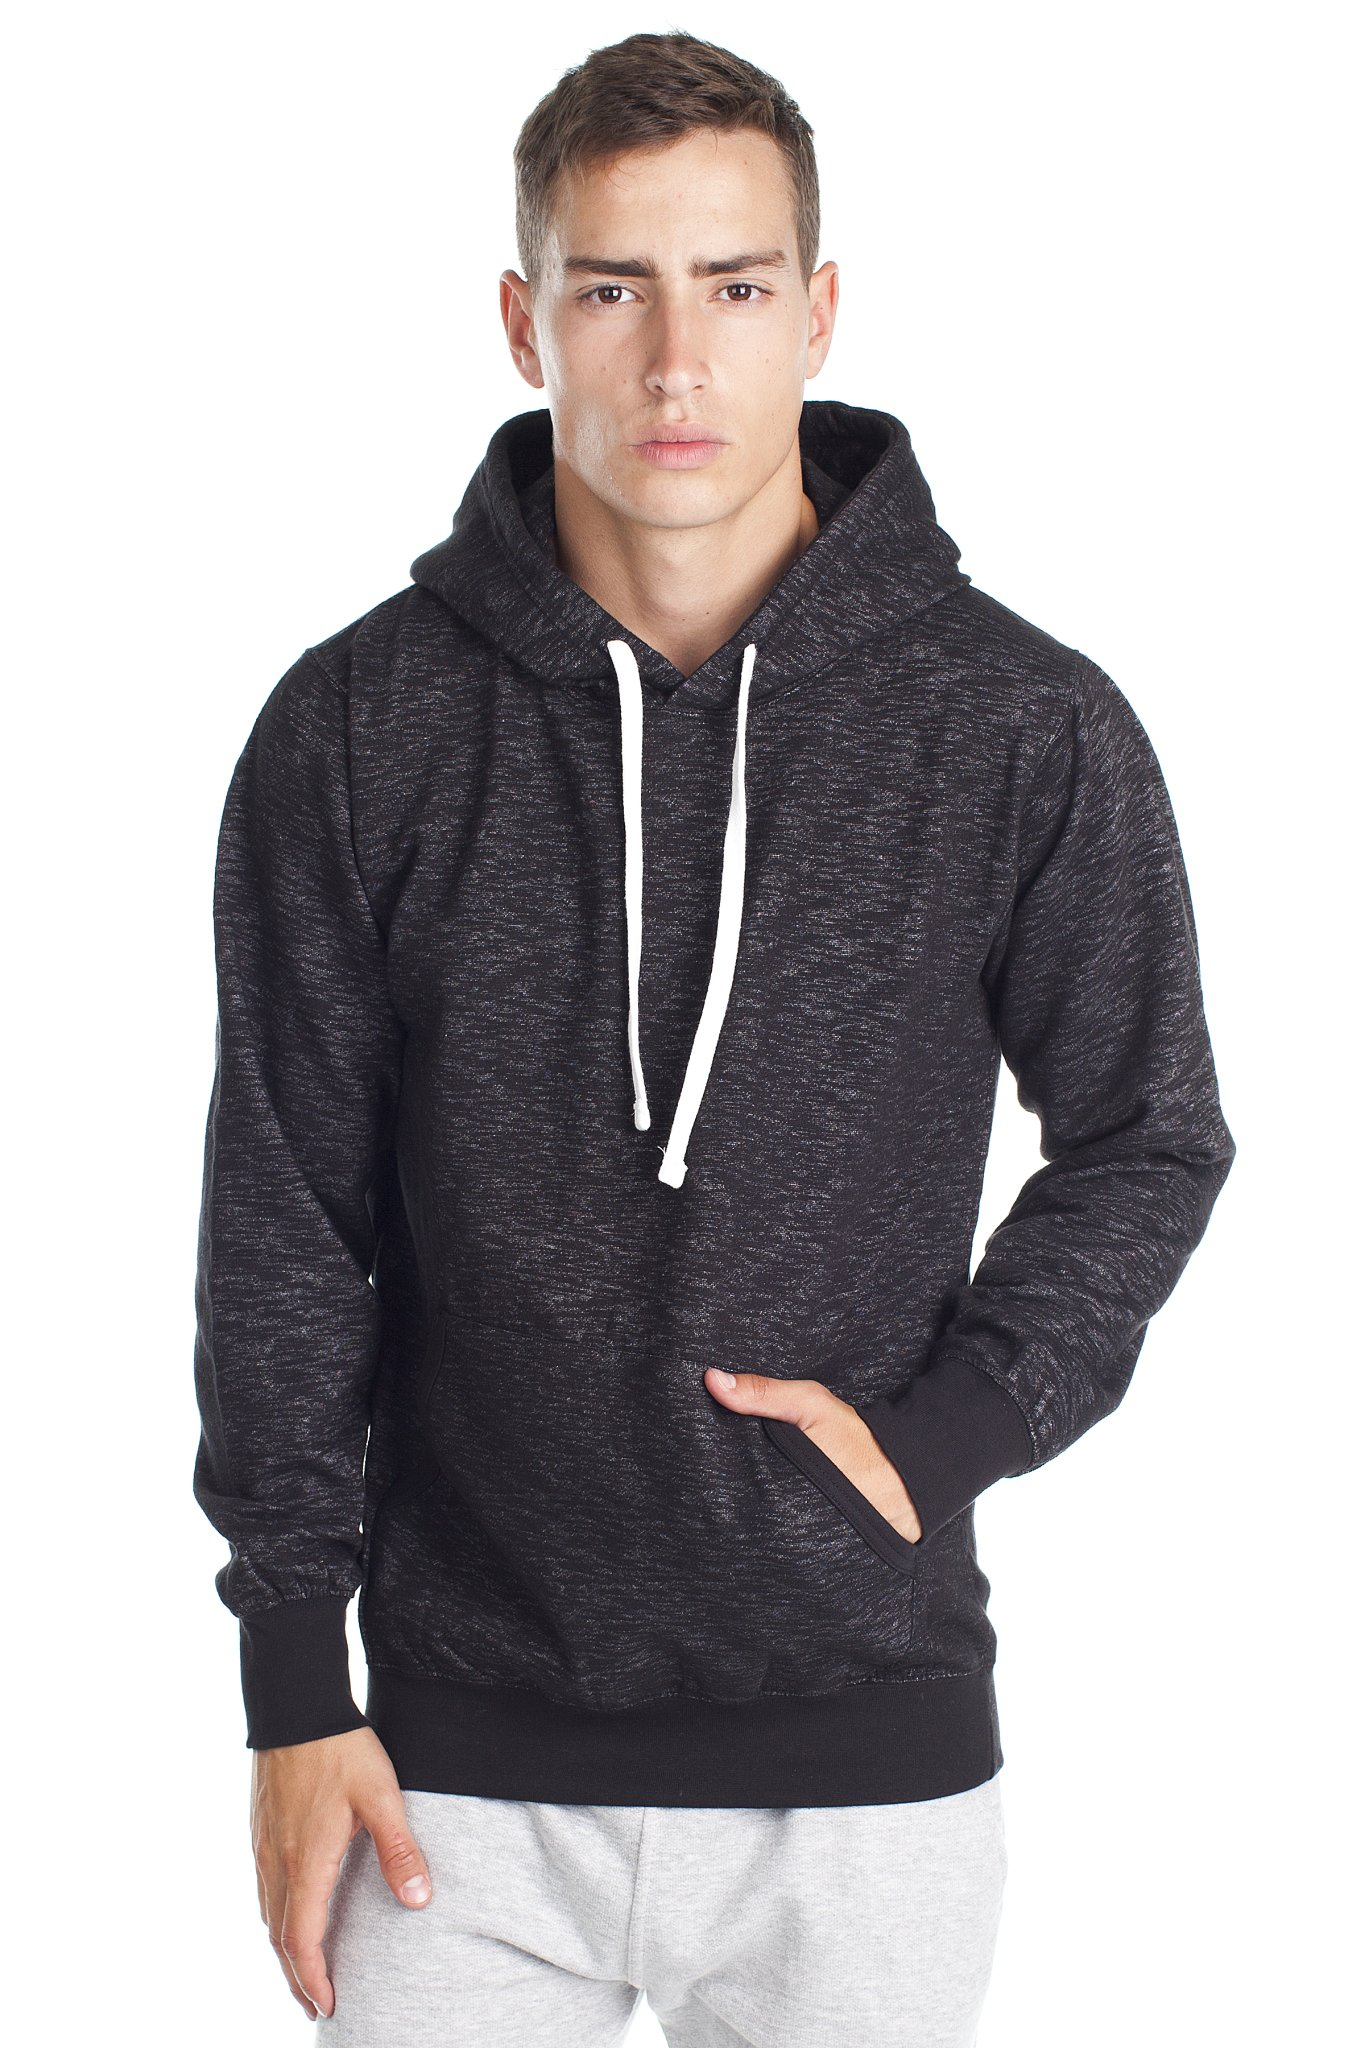 Mens Pullover Sweatshirt Hoodie with Fashion Fit in